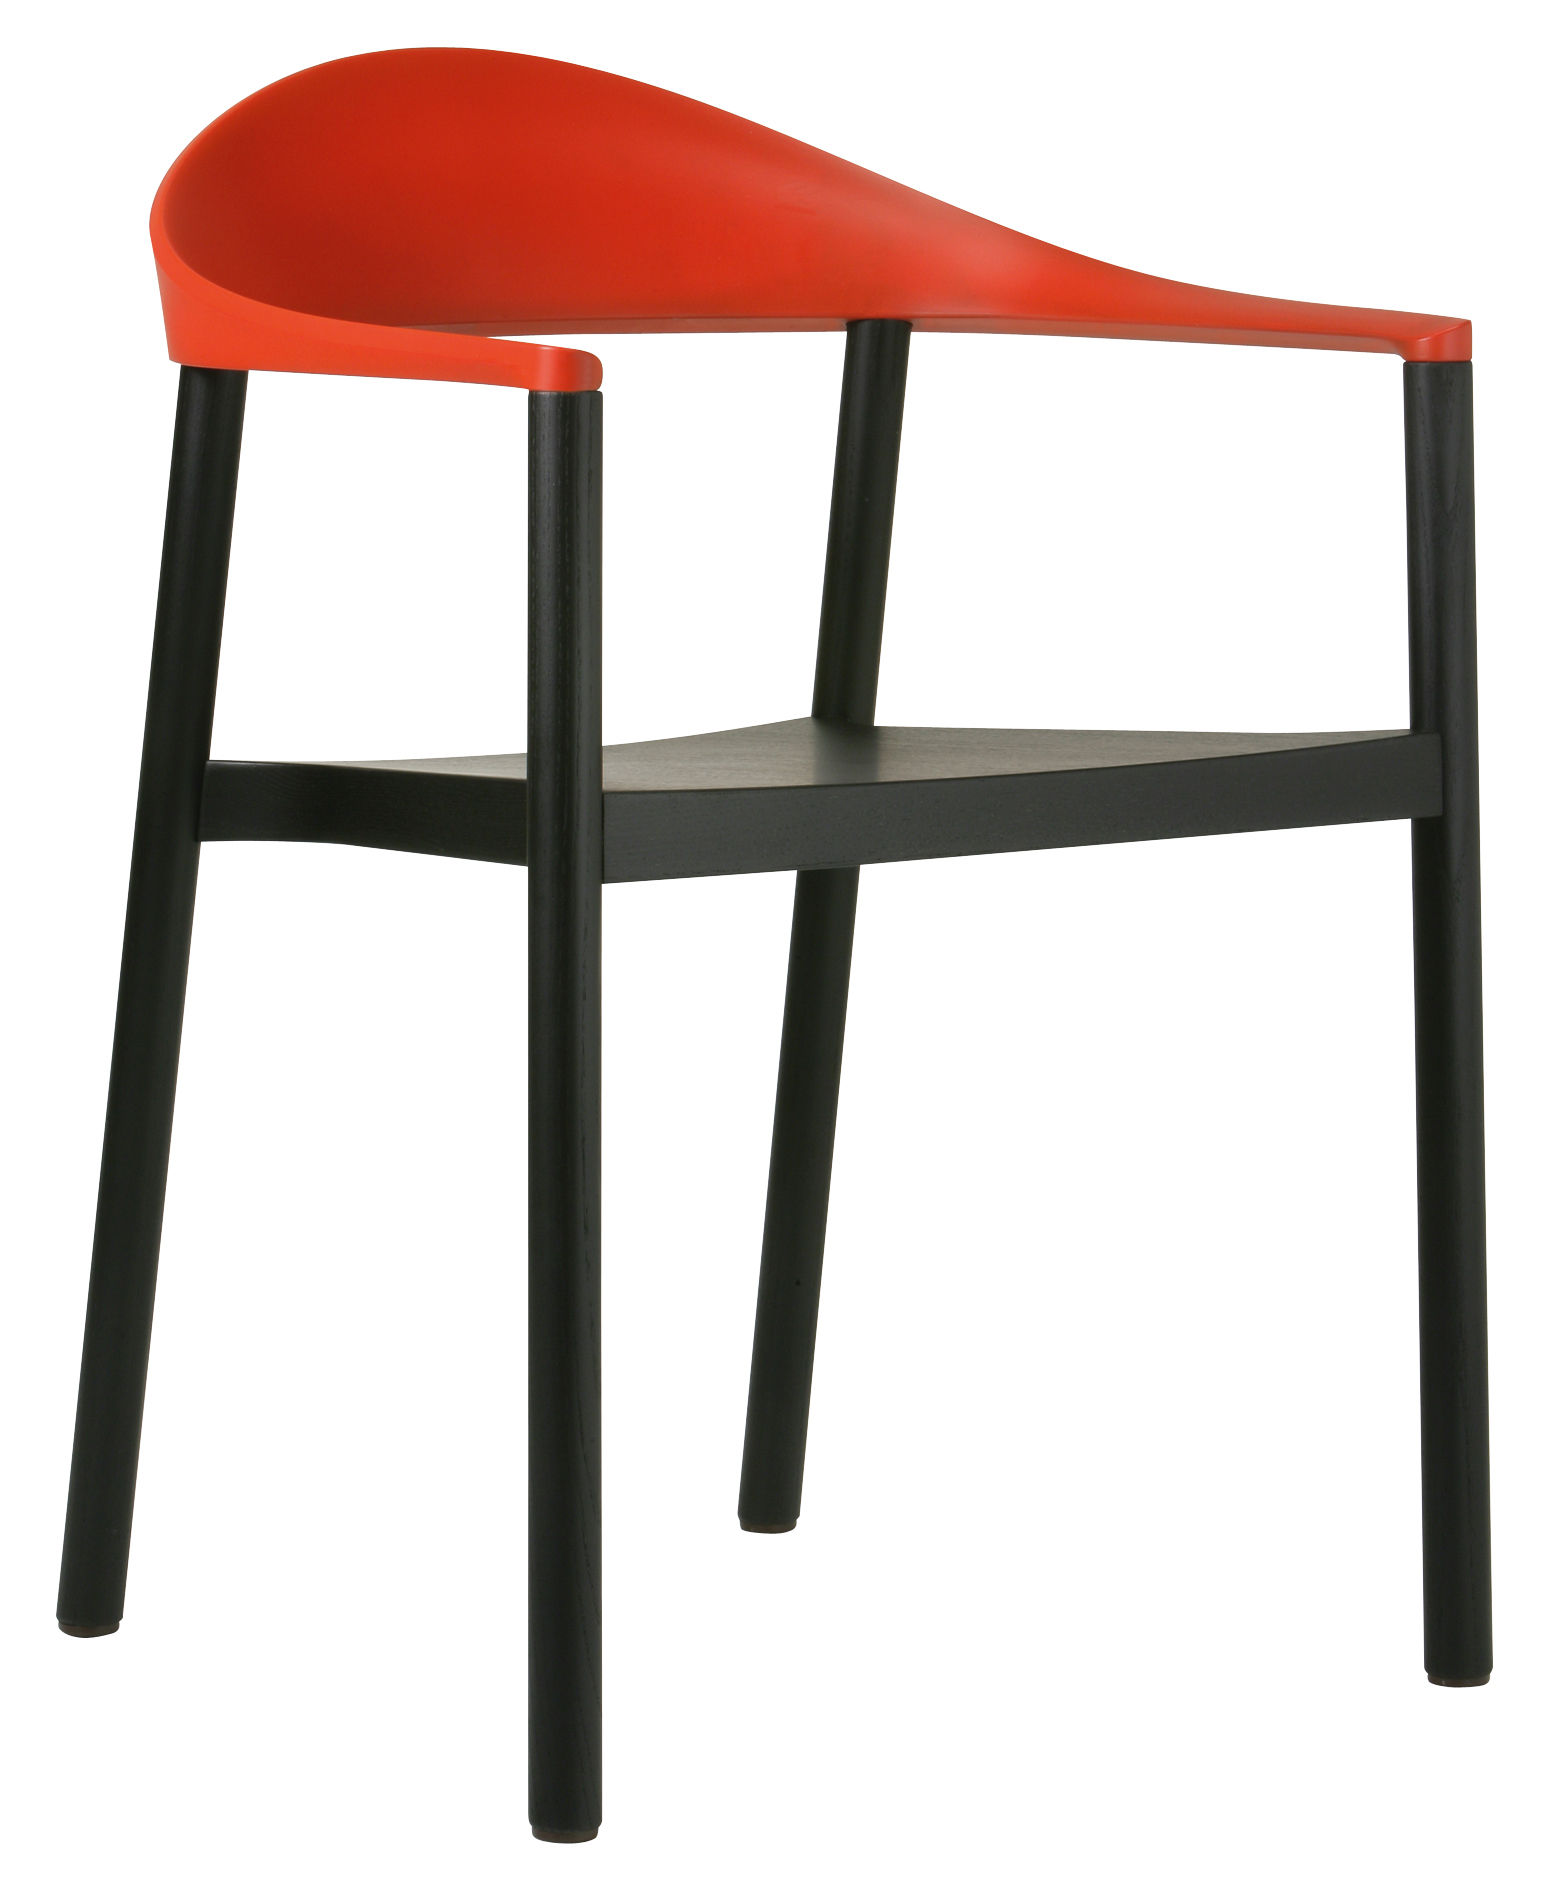 Furniture - Chairs - Monza Stackable armchair - Plastic & painted wood by Plank - Black / Red backrest - Polypropylene, Varnished ashwood